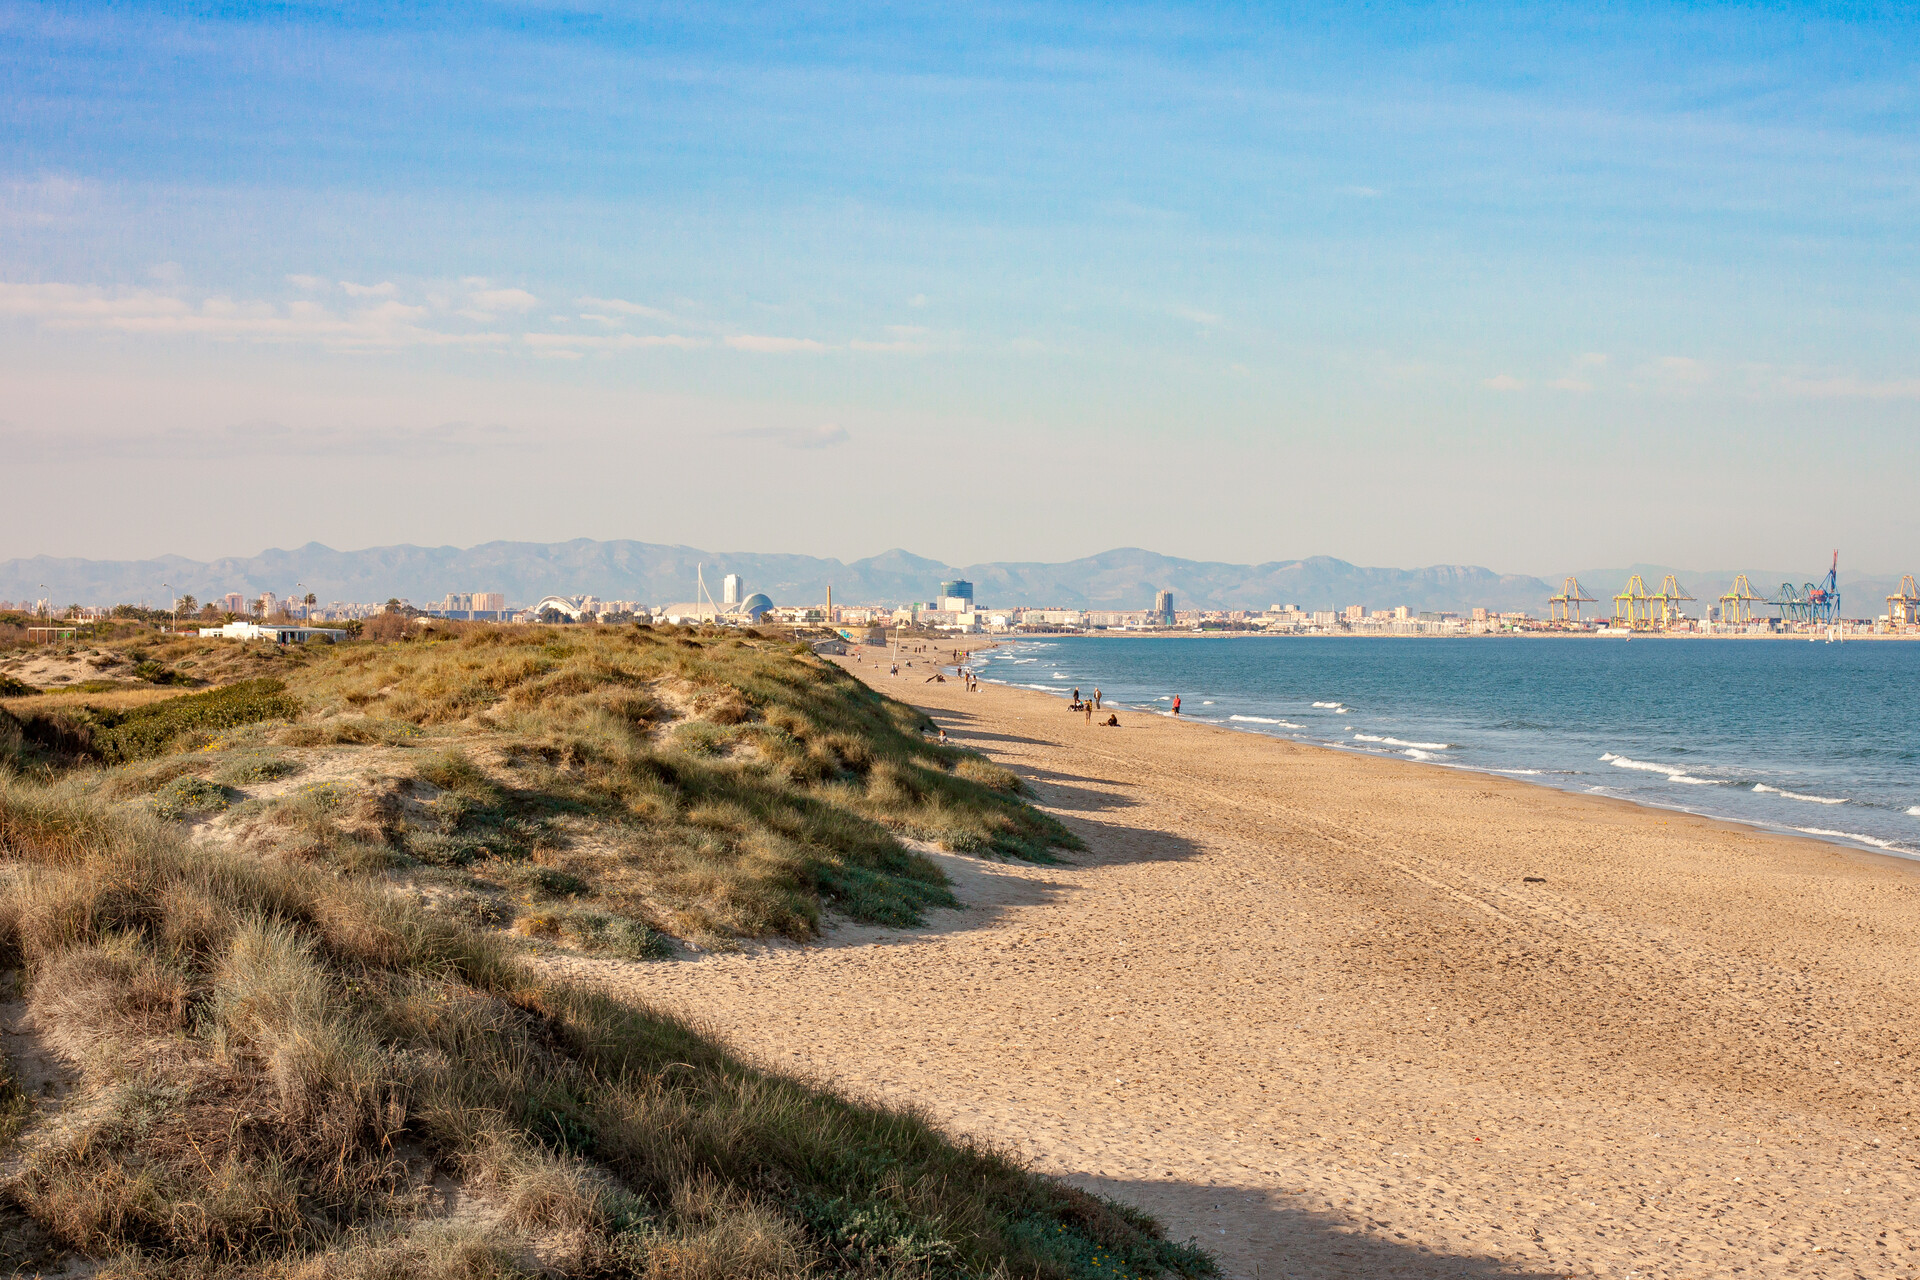 The best Spanish beaches to visit during your Erasmus according to our readers